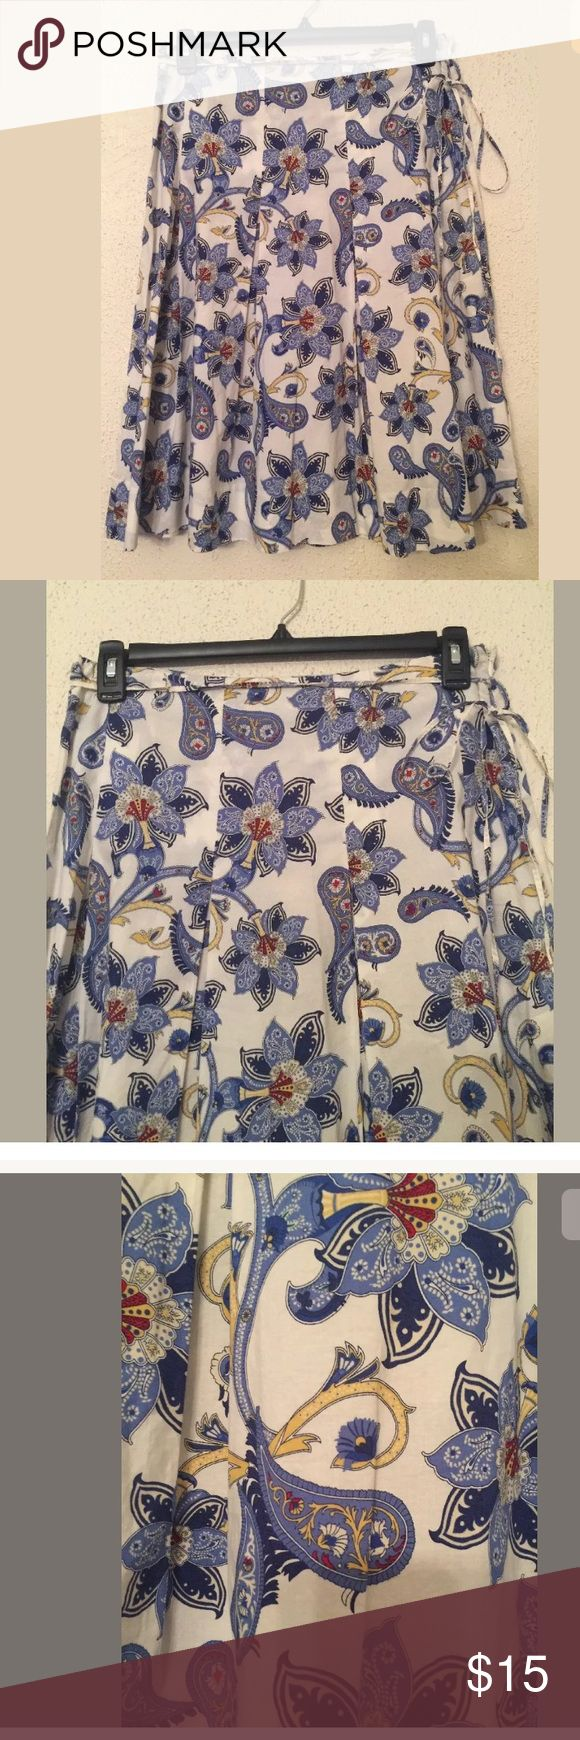 Tommy Hilfiger Skirt Pleated Blue Paisley Size 8 Tommy Hilfiger Womens Skirt Pleated Blue Paisley Size 8 100% Cotton . Excellent skirt beautiful print and color combination. Tommy Hilfiger Skirts A-Line or Full